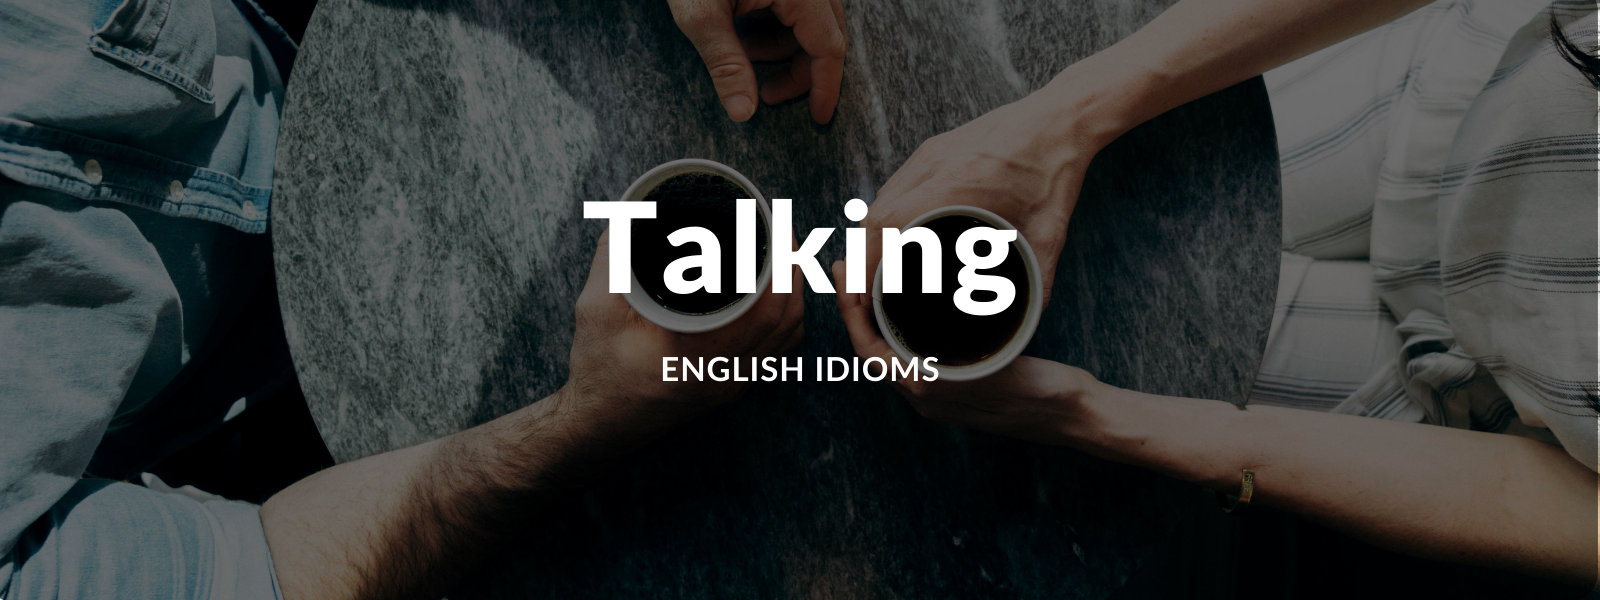 Top 15 Idioms About Talking To Show Off At Work